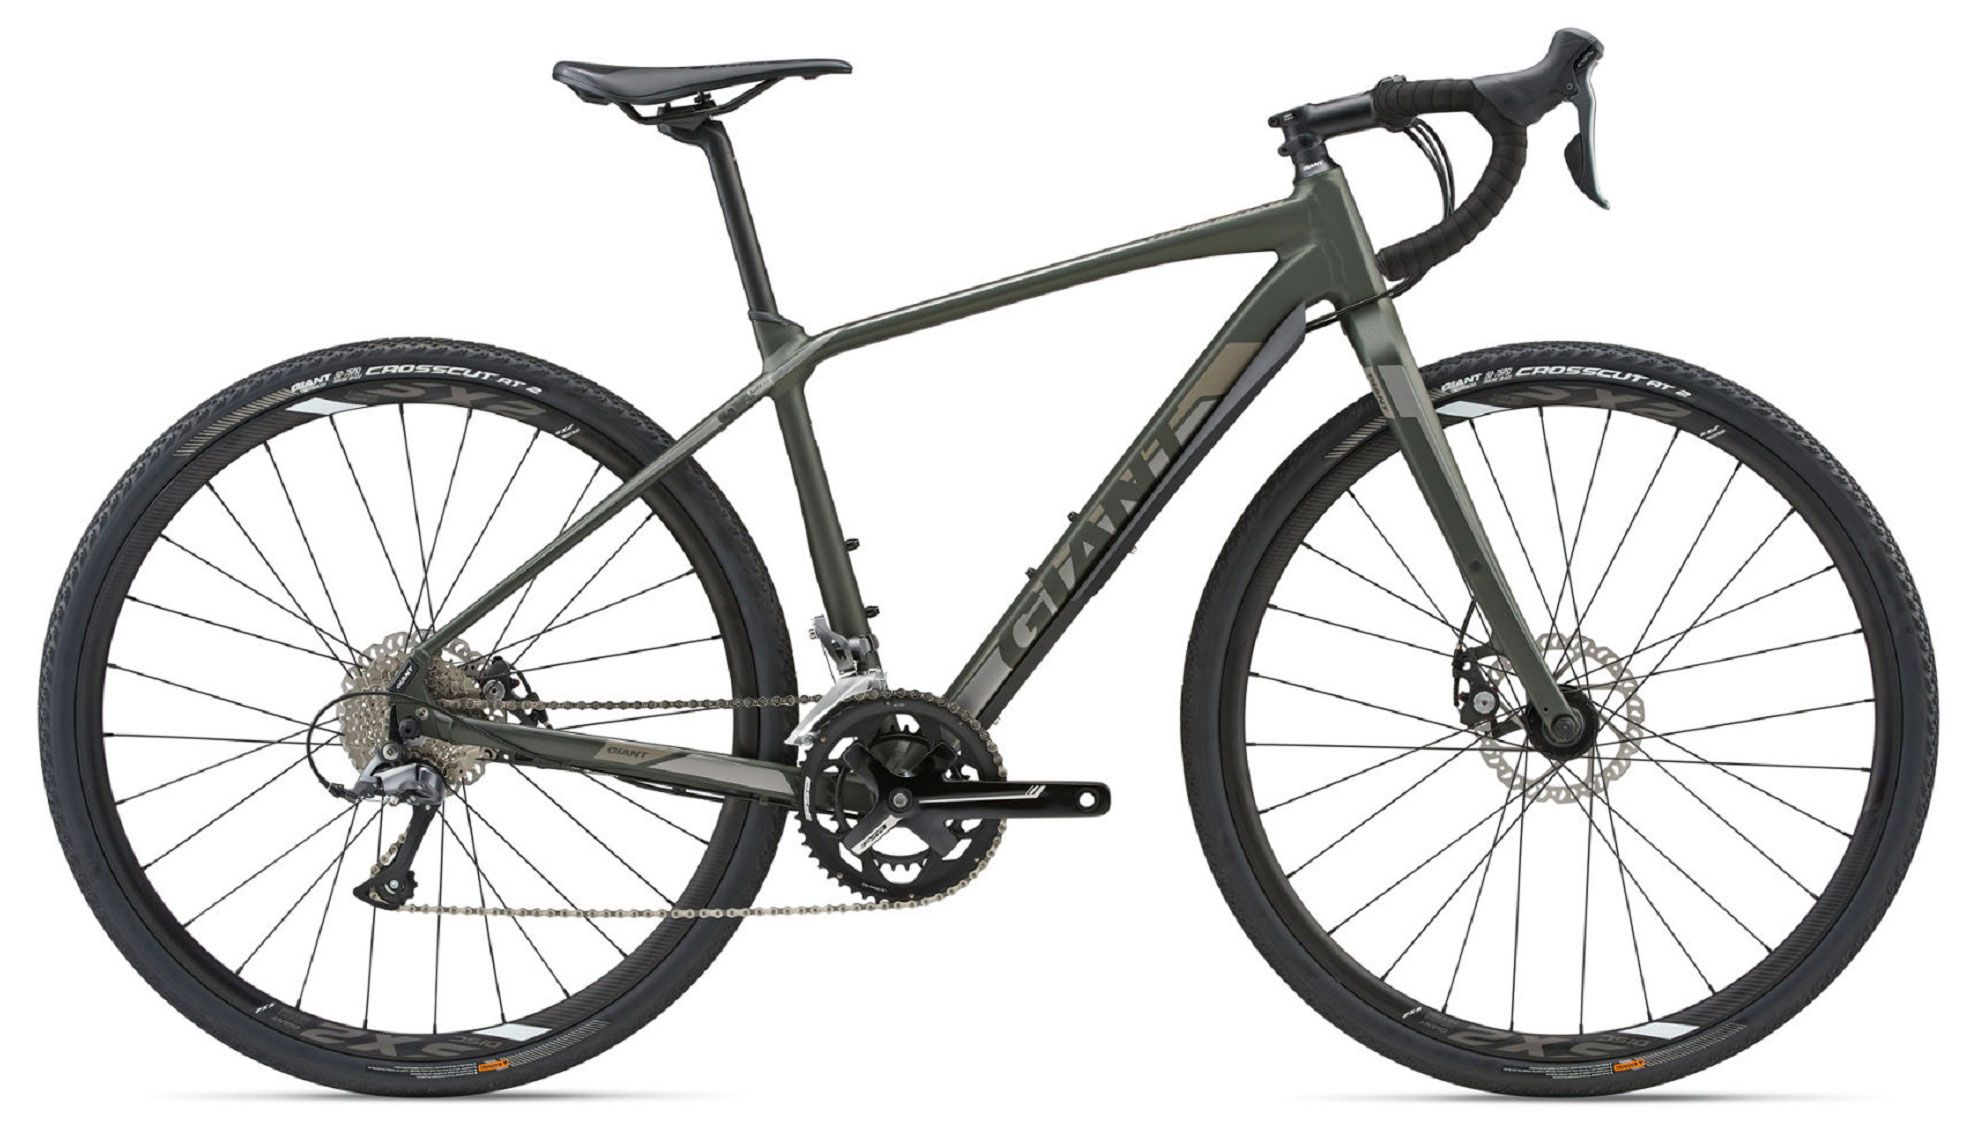 Велосипед Giant ToughRoad SLR GX 3 2018 велосипед giant toughroad slr 1 2018